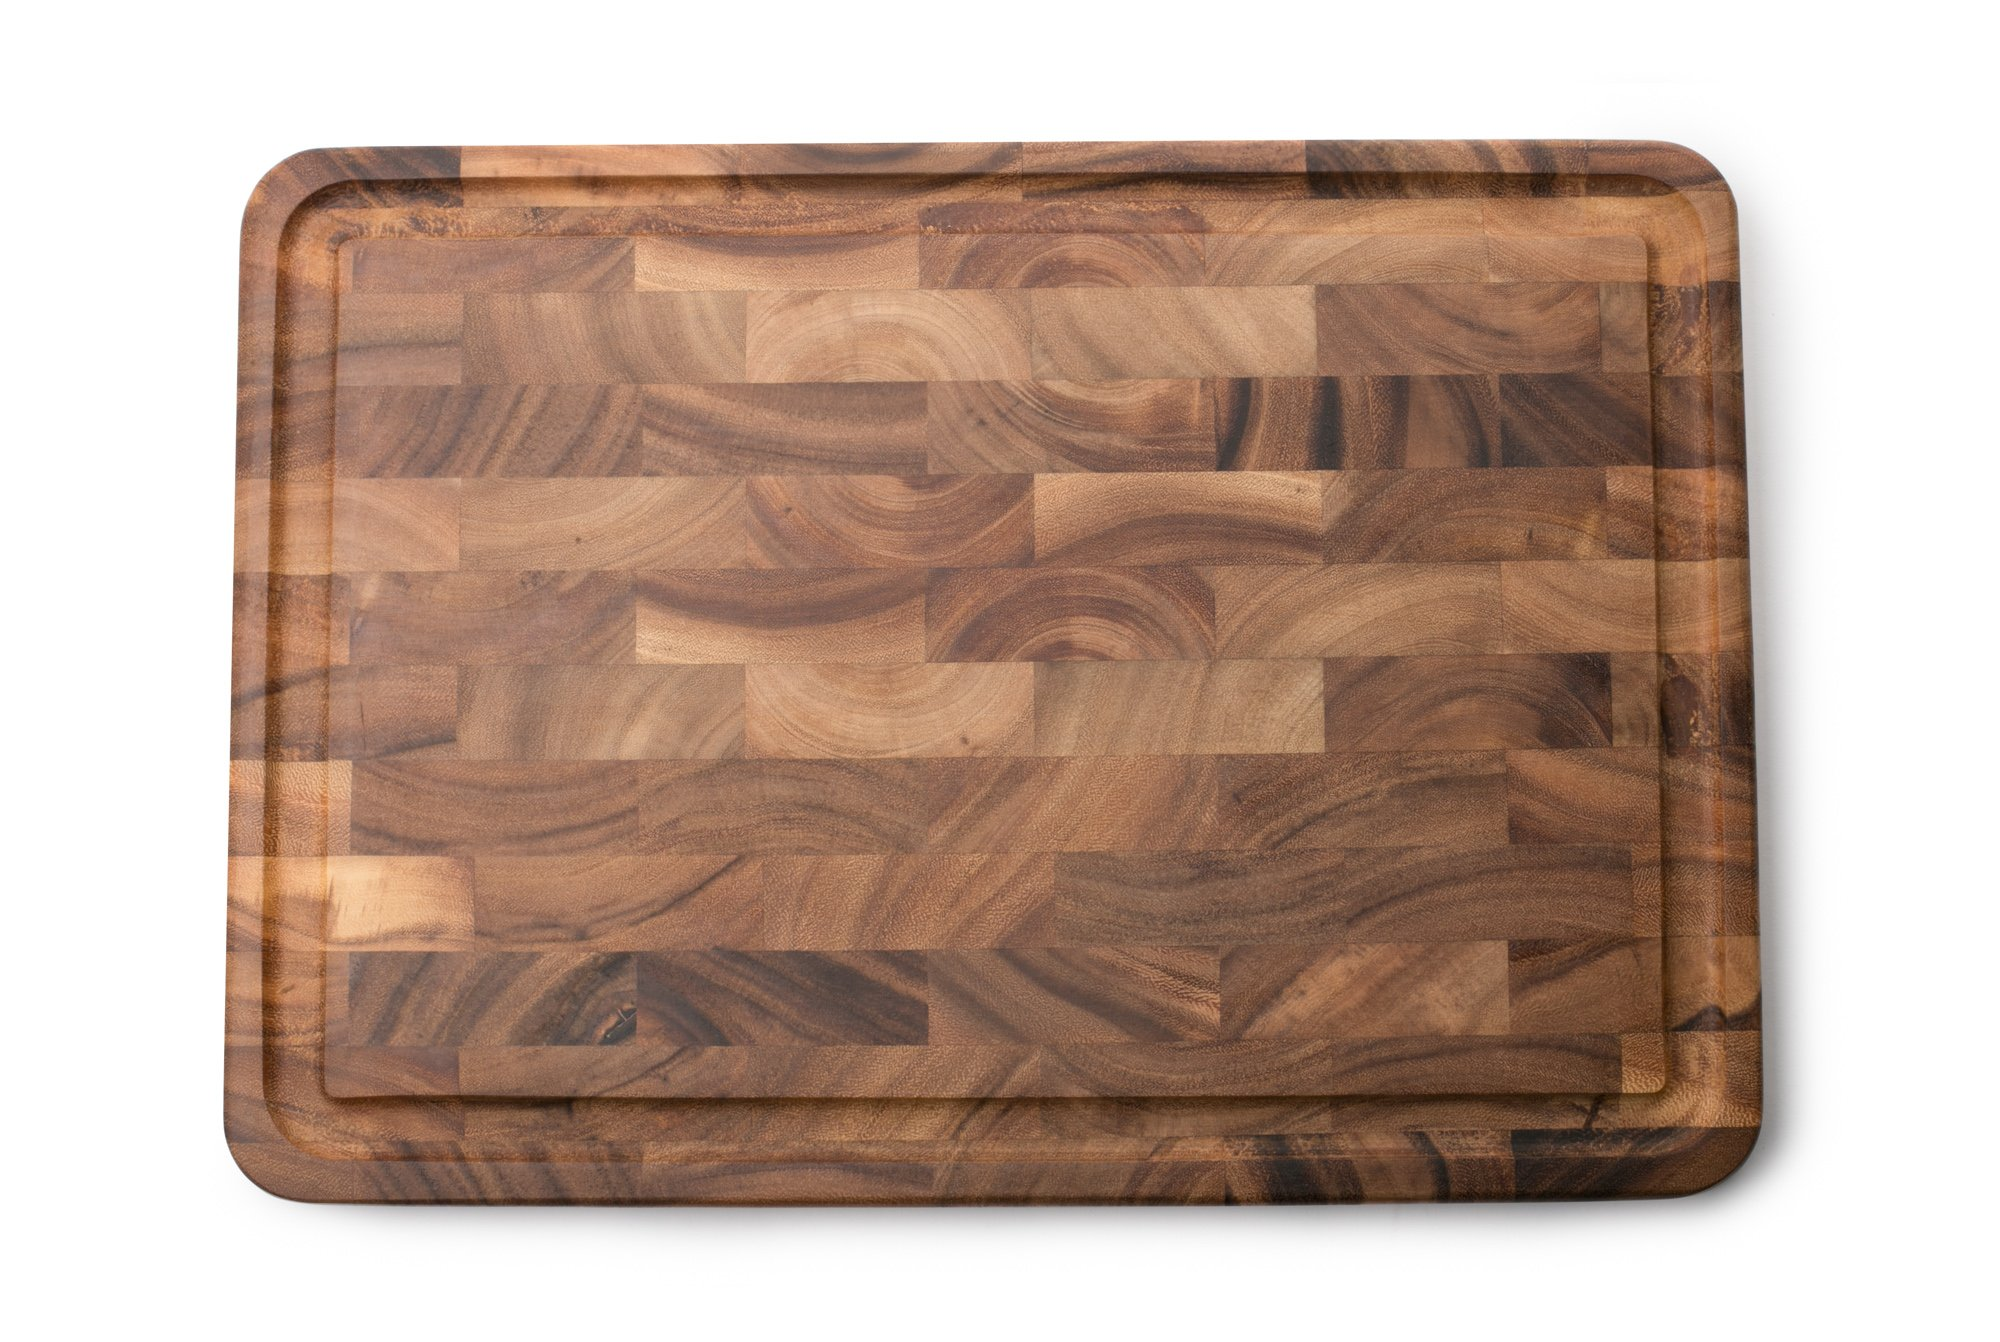 Ironwood Gourmet 28669 Charleston End Grain Board with Channel, Acacia Wood by Ironwood Gourmet